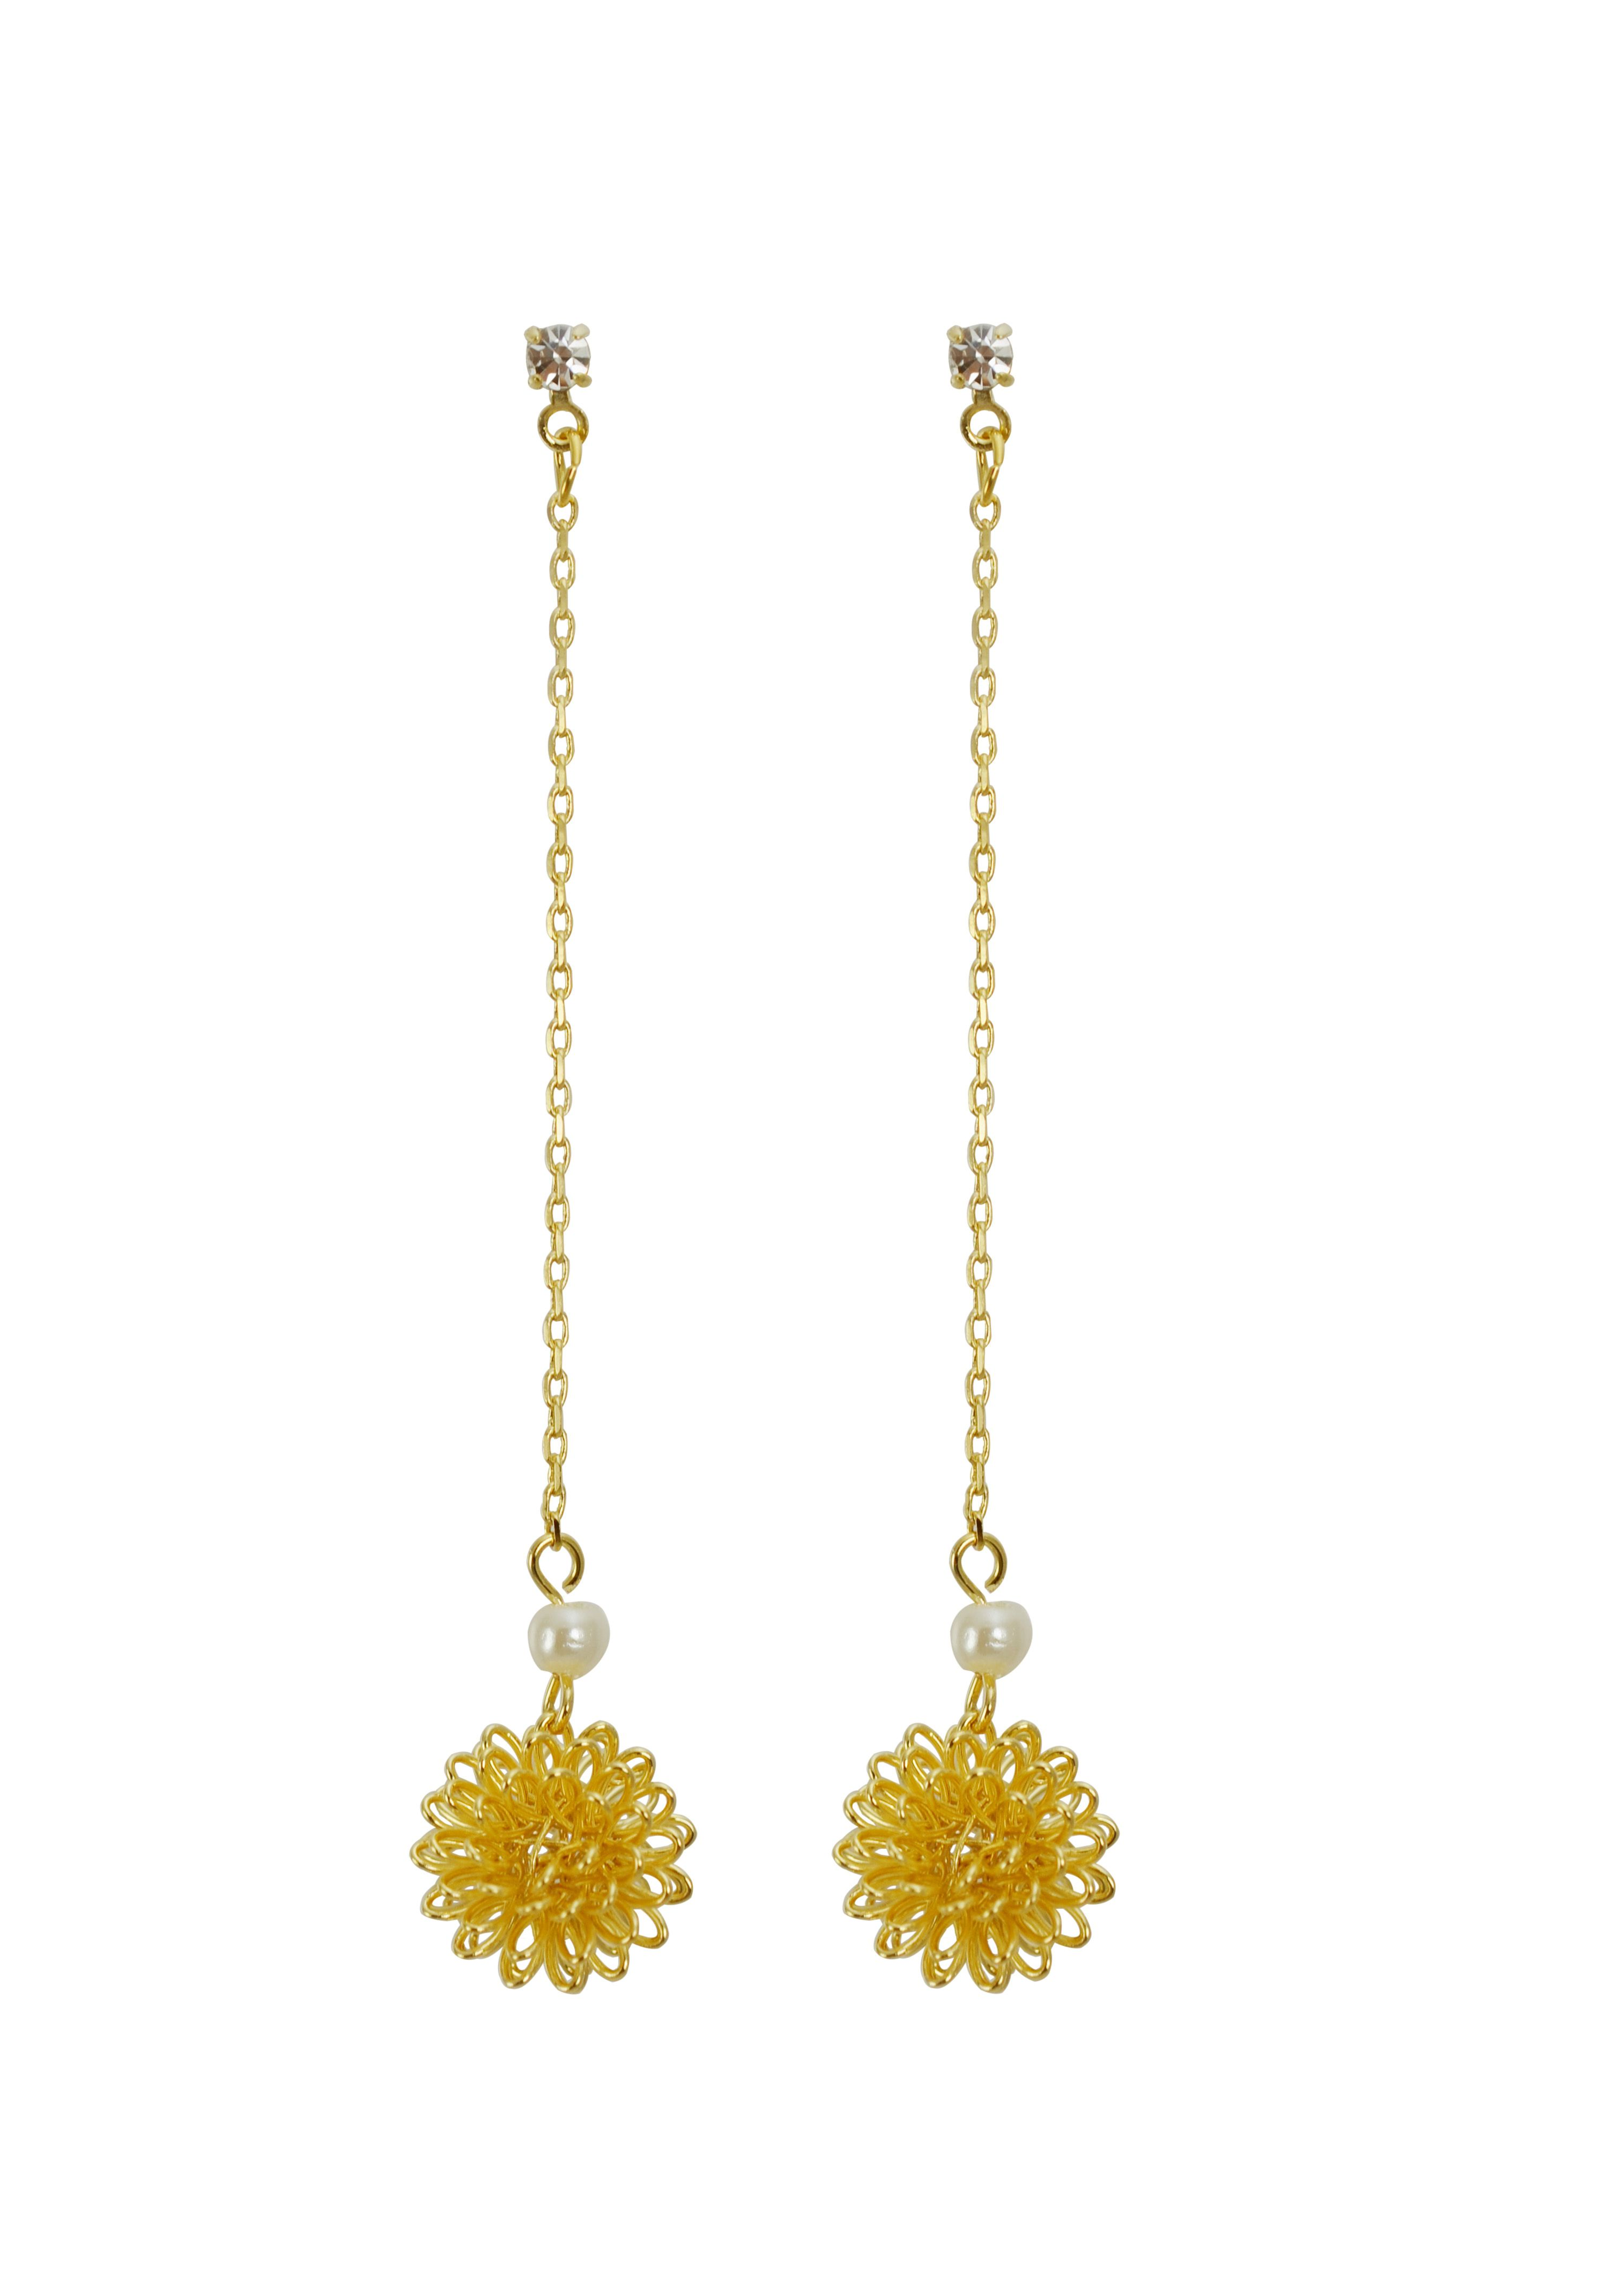 Flower mesh drop earrings with cubic studs  from YourBasicJewelry